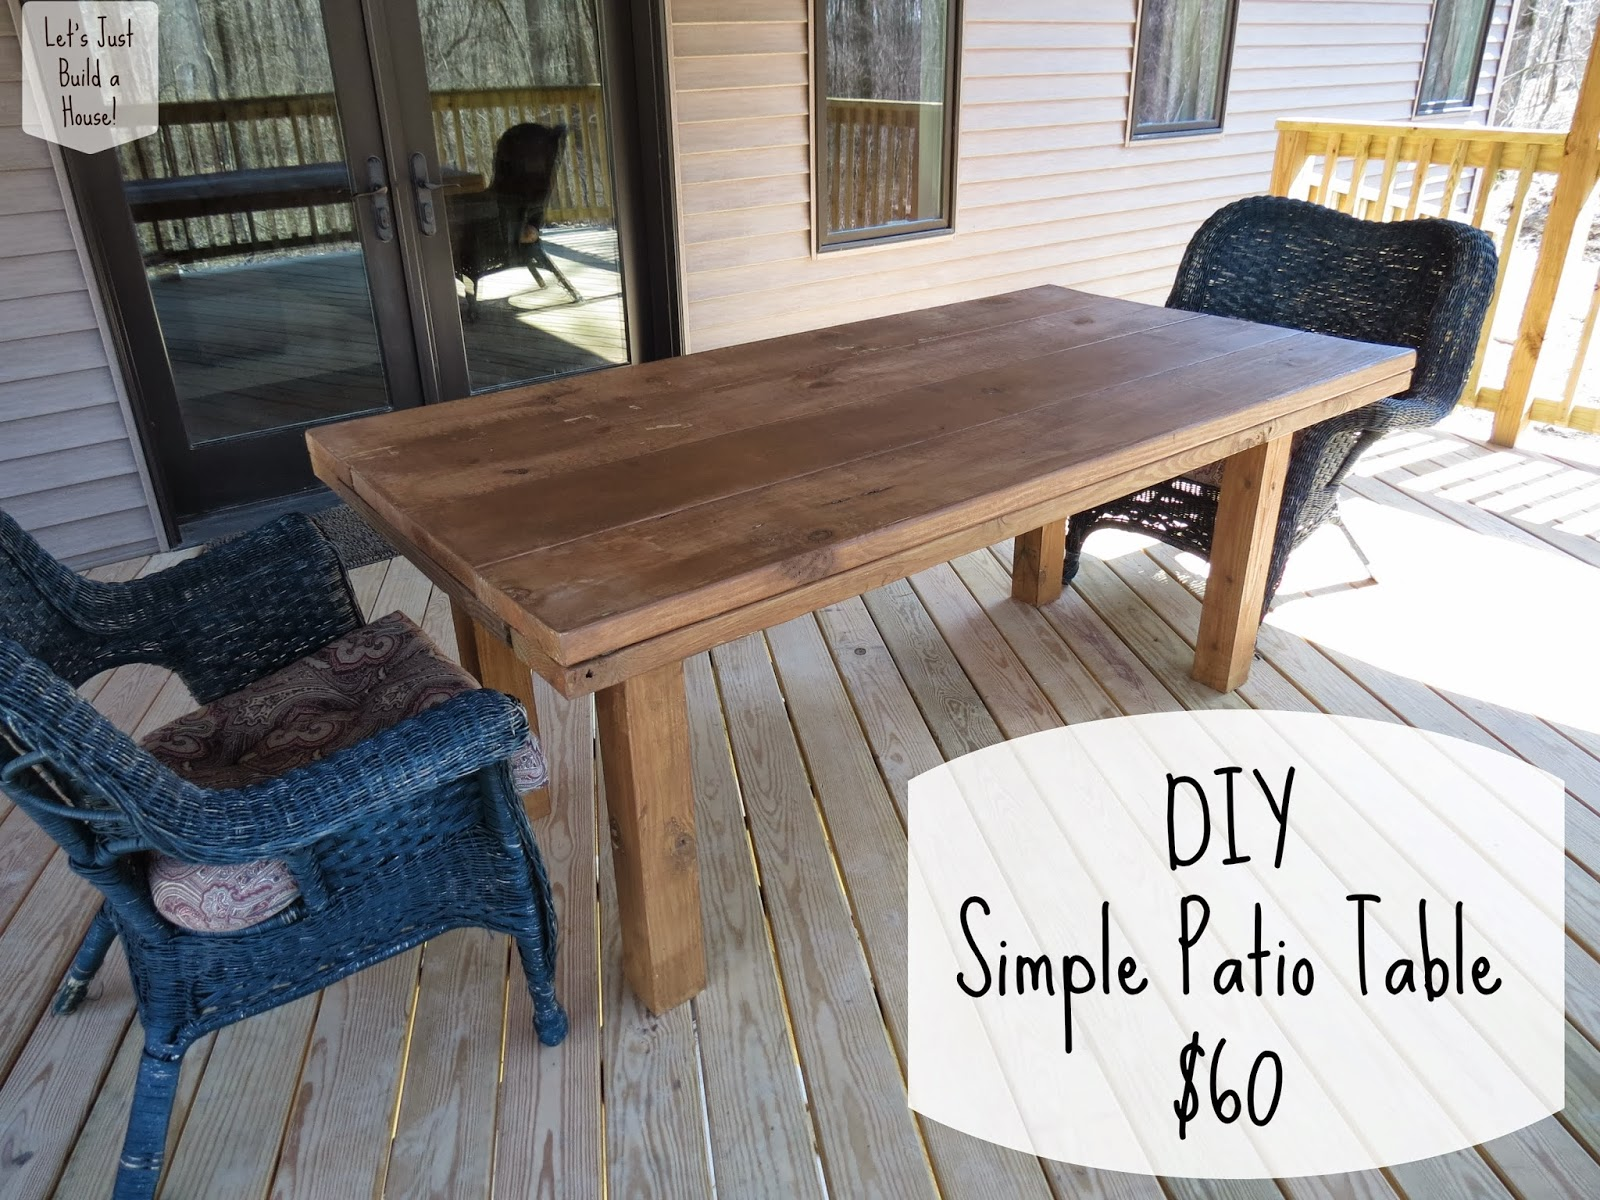 Lets Just Build a House DIY Simple Patio Table Revisited reader – Diy Patio Table Plans